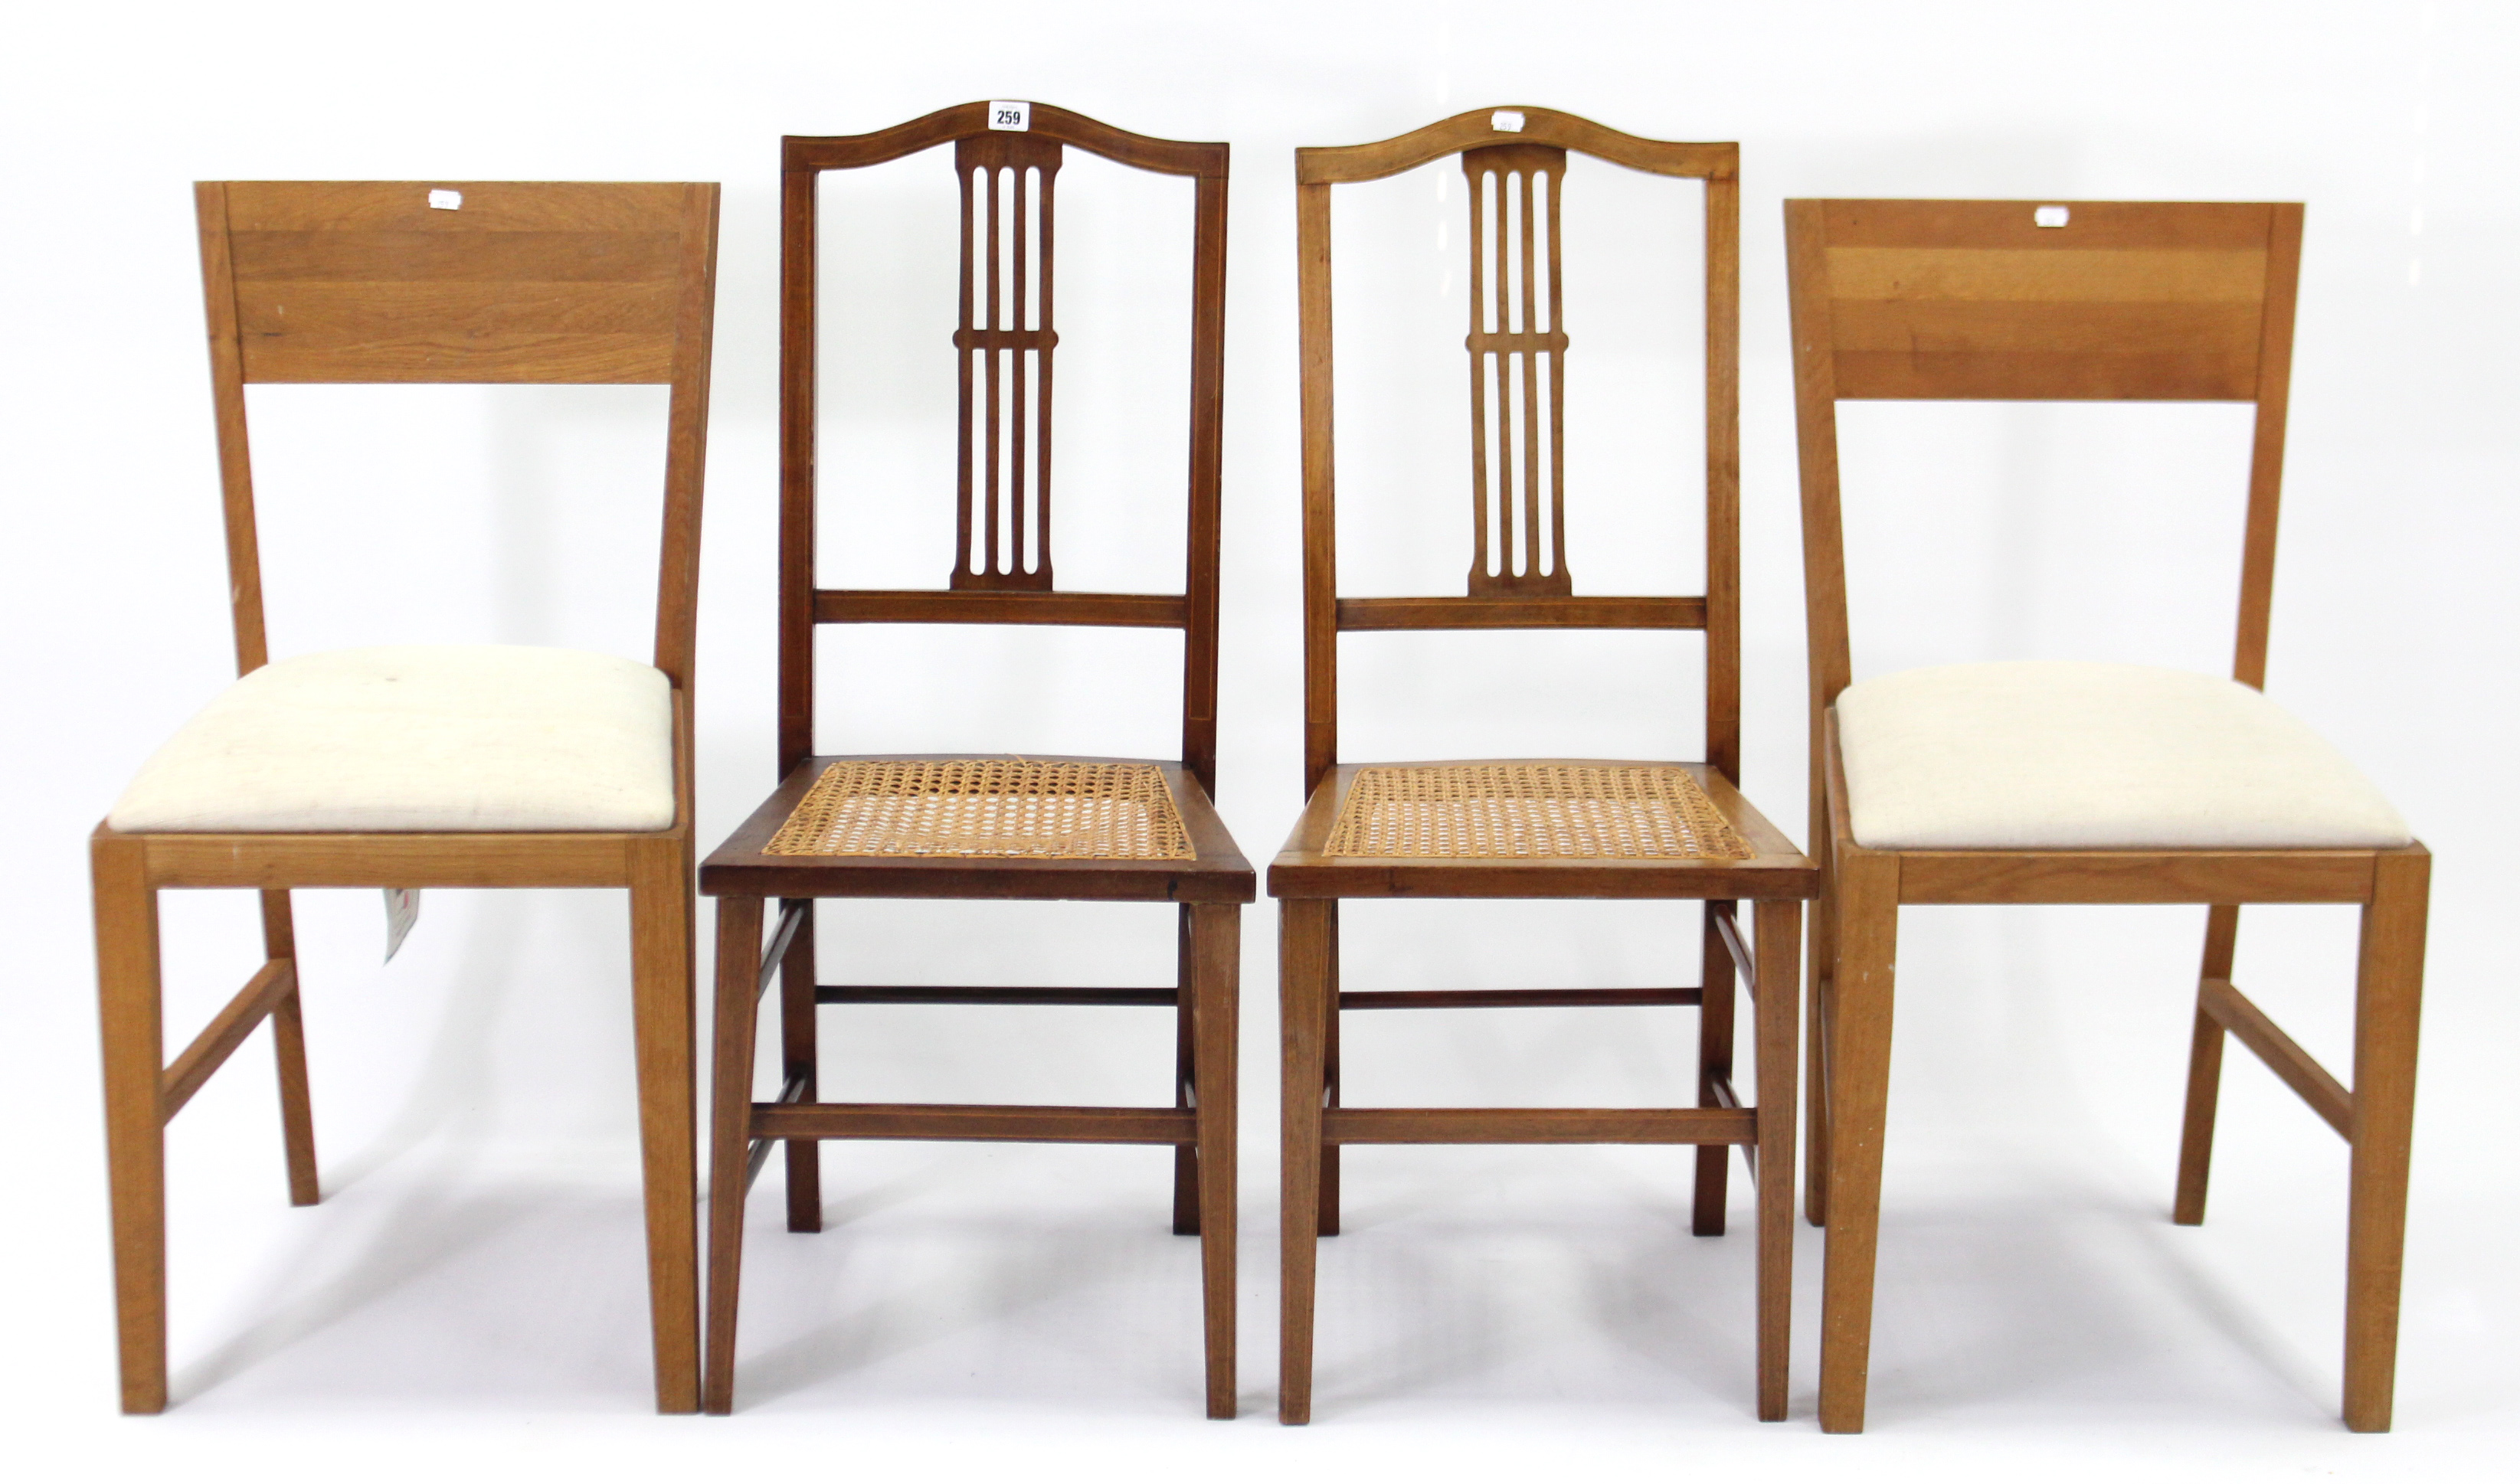 Lot 259 - A pair of Edwardian inlaid-mahogany splat-back occasional chairs, with woven cane seats & on